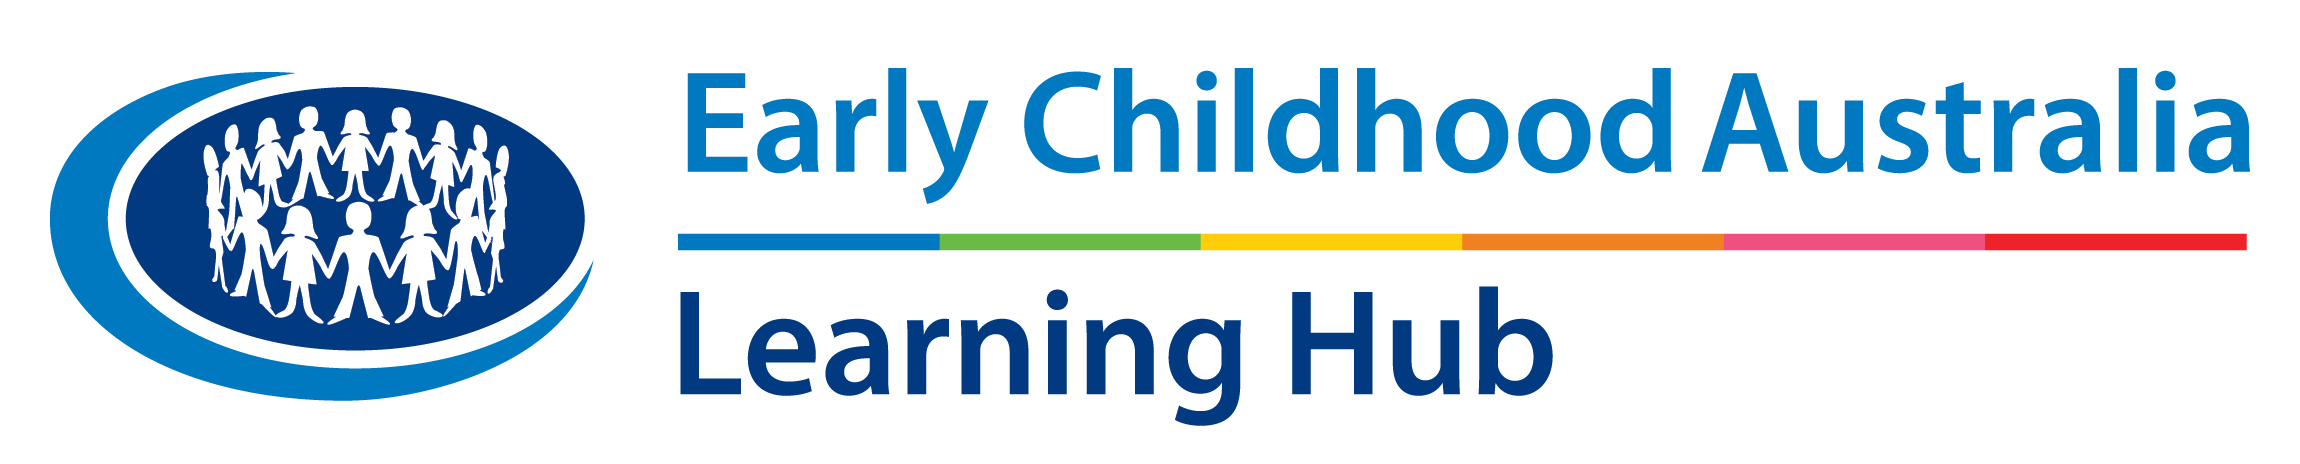 Webinars - Early Childhood Australia Learning Hub